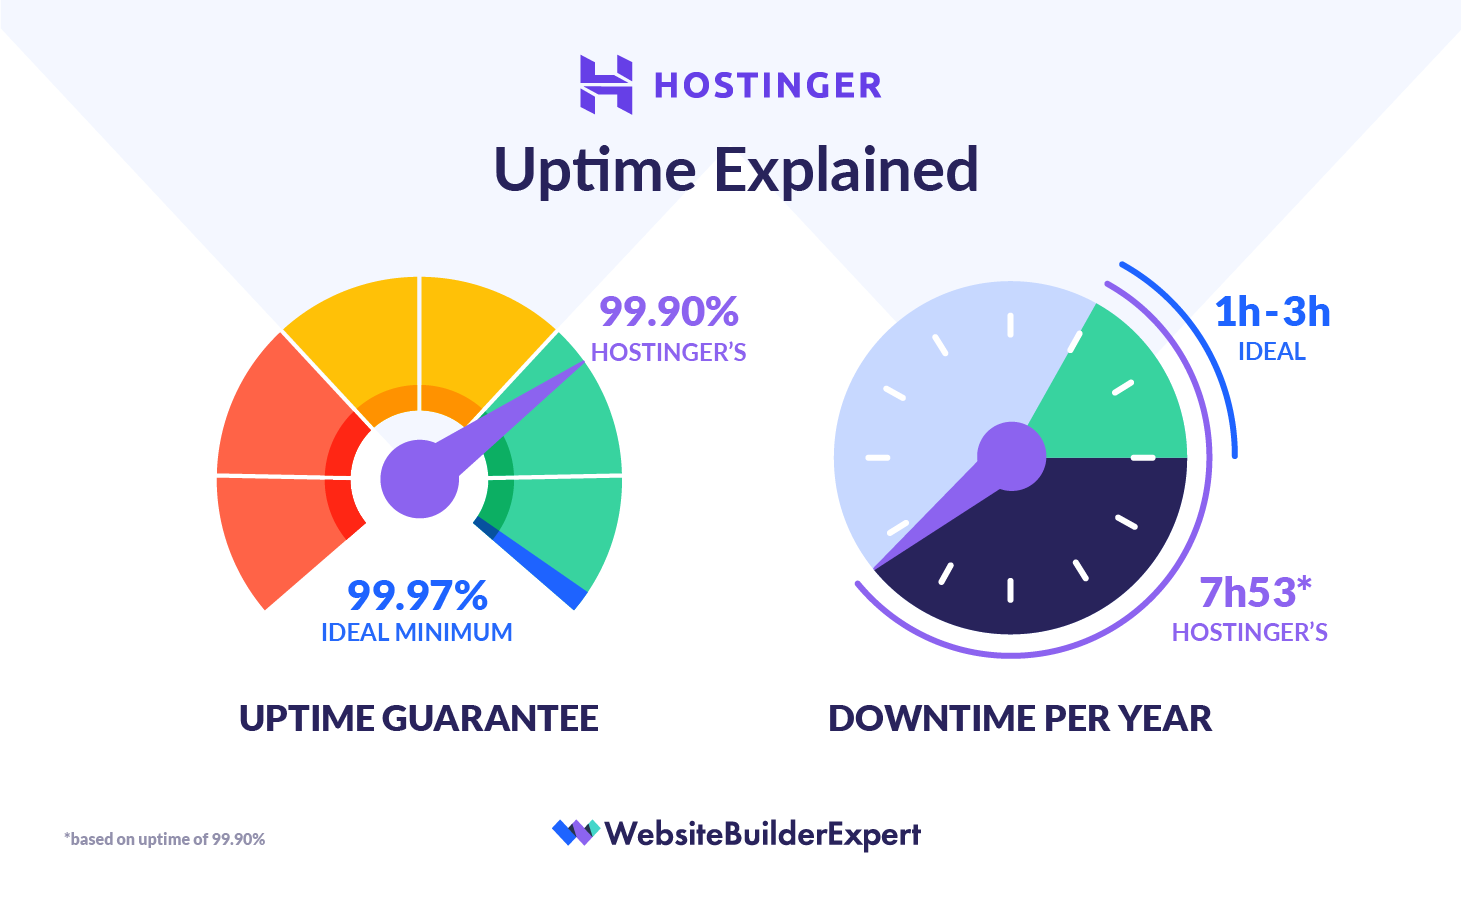 hostinger uptime explained graphic